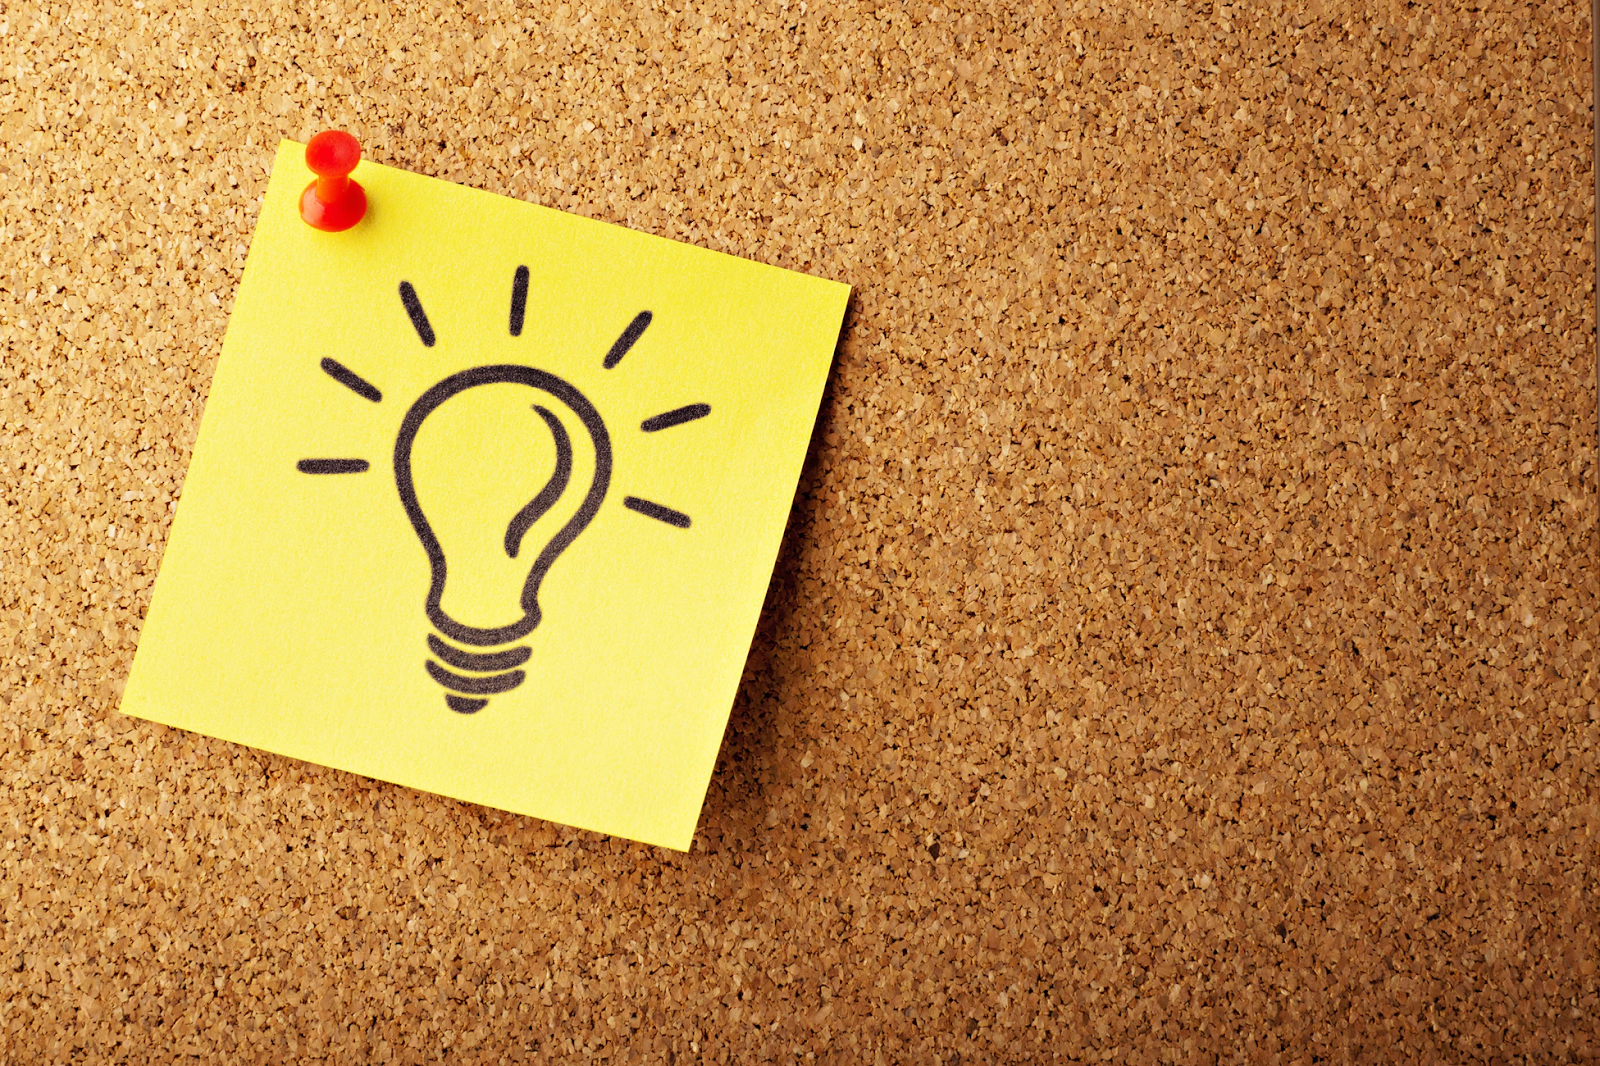 pinned post-it with light bulb on it